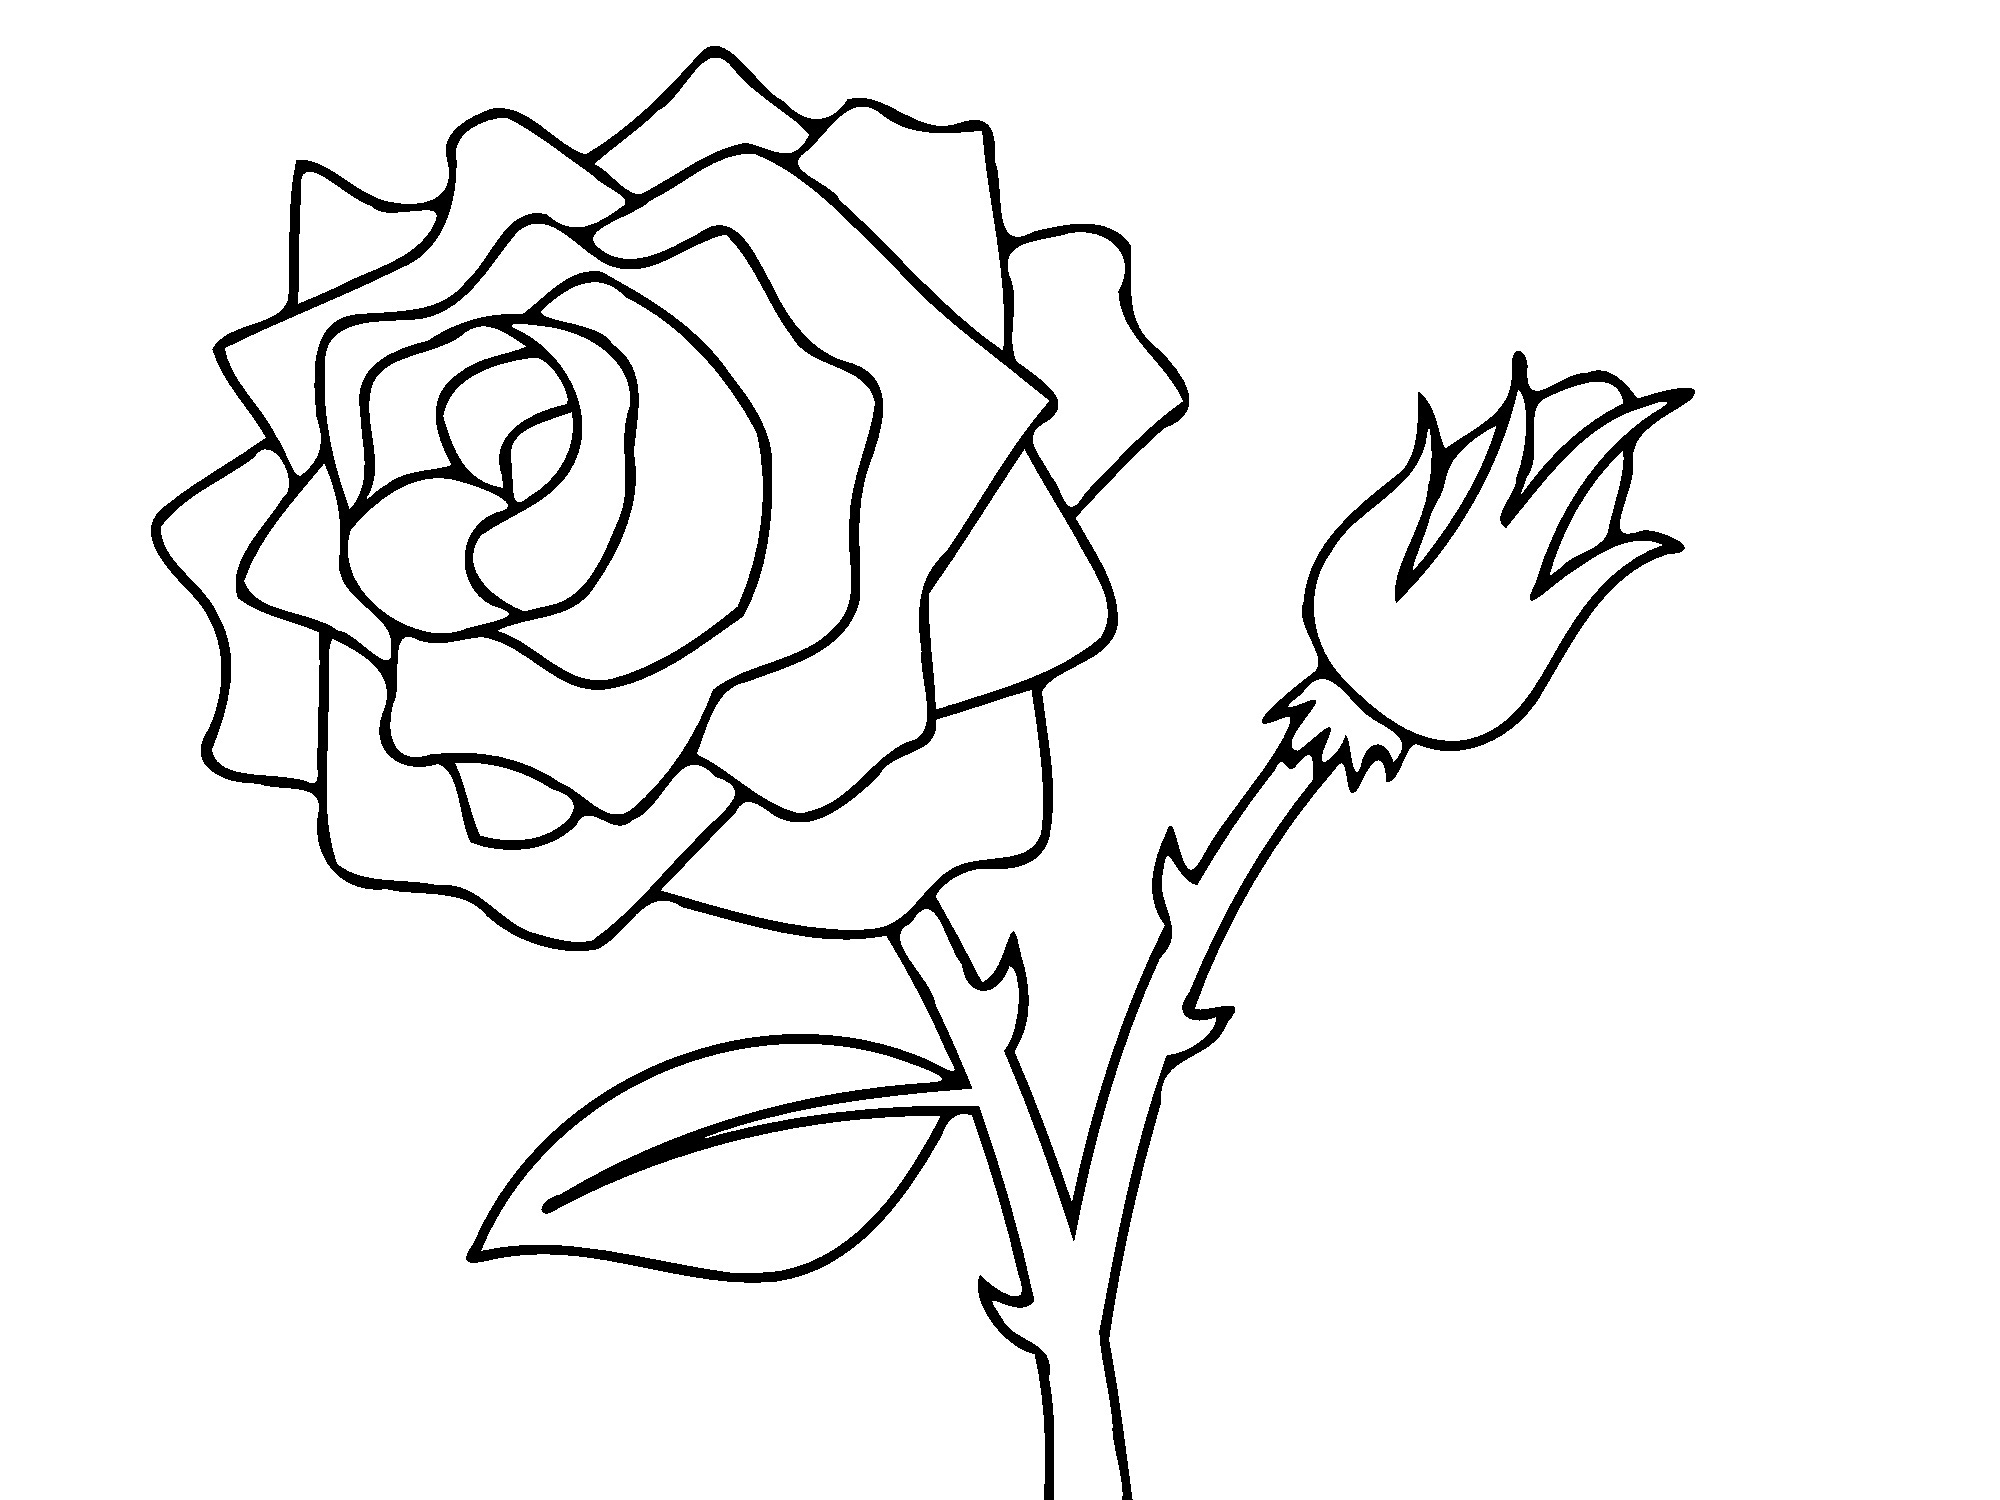 rose coloring sheet flower coloring pages rose flower coloring page pages rose flower sheet coloring coloring